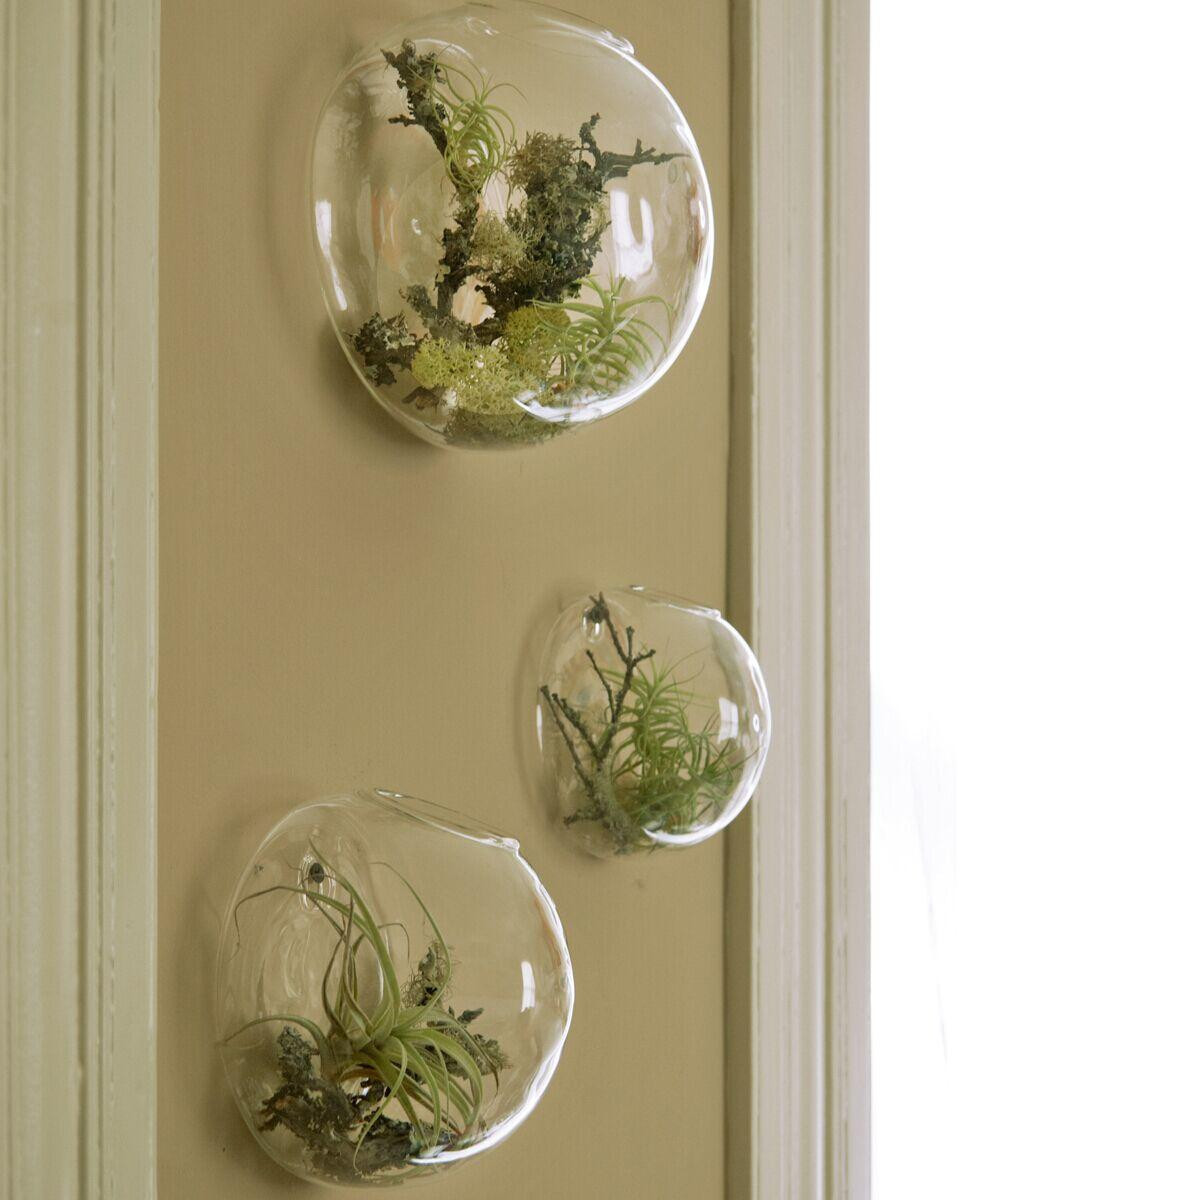 tom dixon vase of glass bubble vases collection wall bubble terrariums glass wall vase regarding glass bubble vases collection wall bubble terrariums glass wall vase for flowers indoor plants